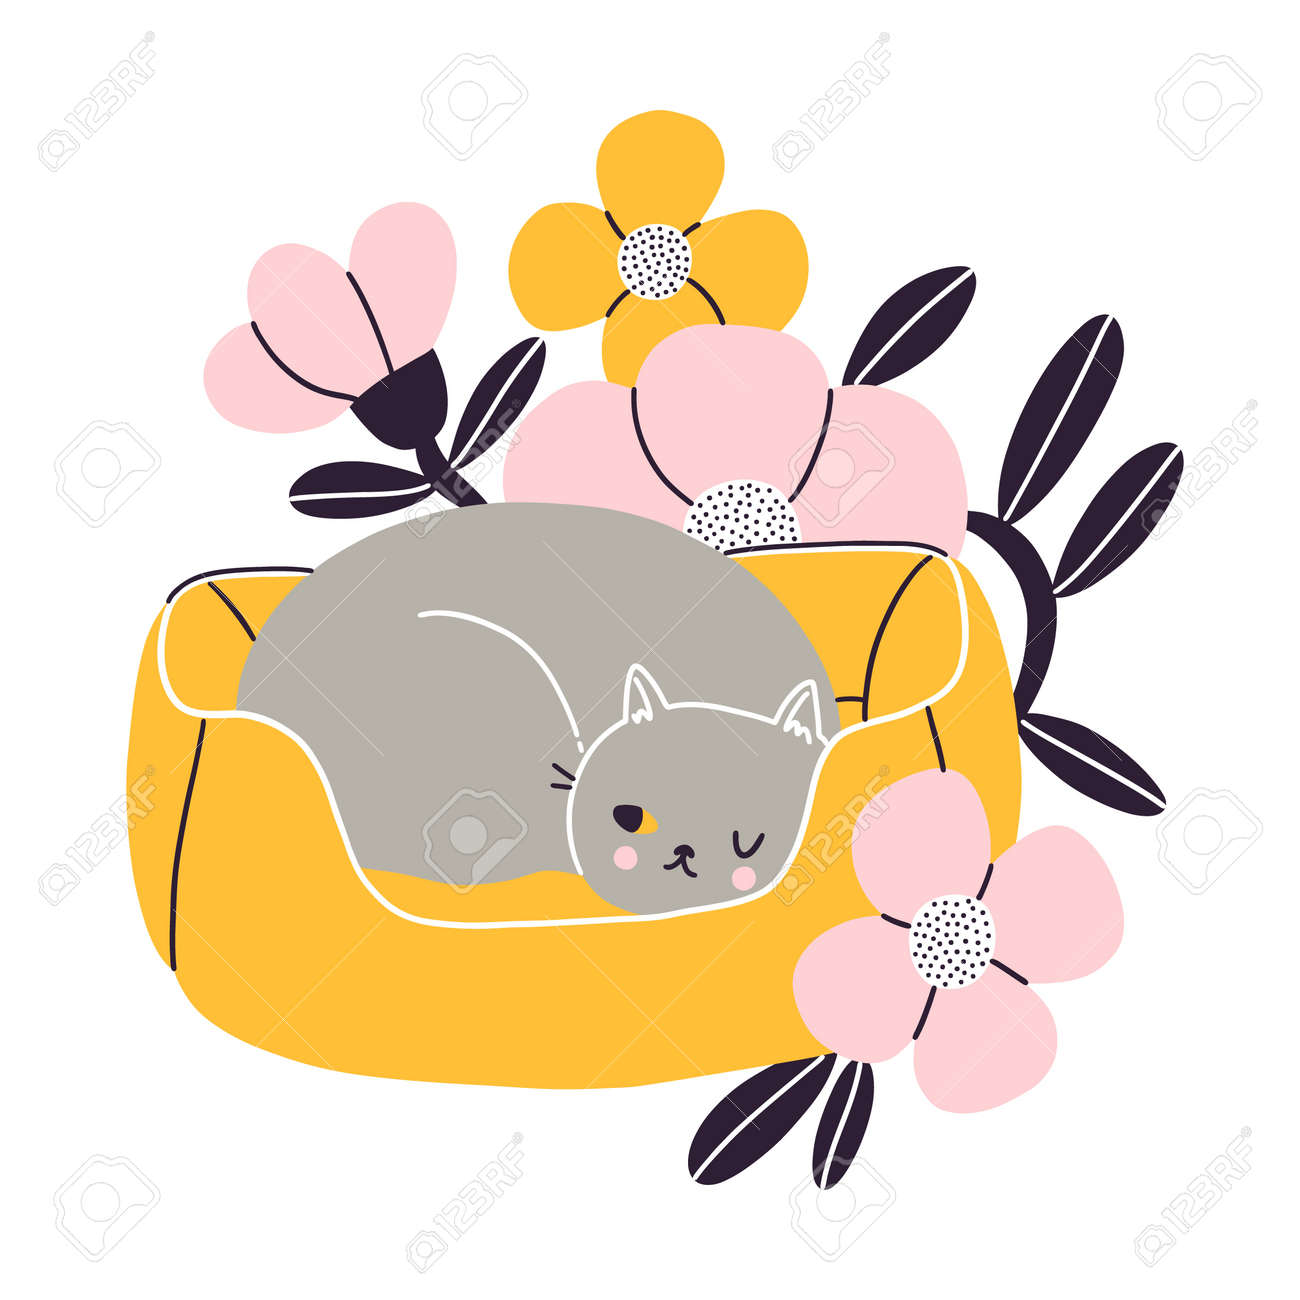 Cat nap corner, gray British cat sleeping in her pet bed with flowers, vector illustration isolated on white background - 163338188